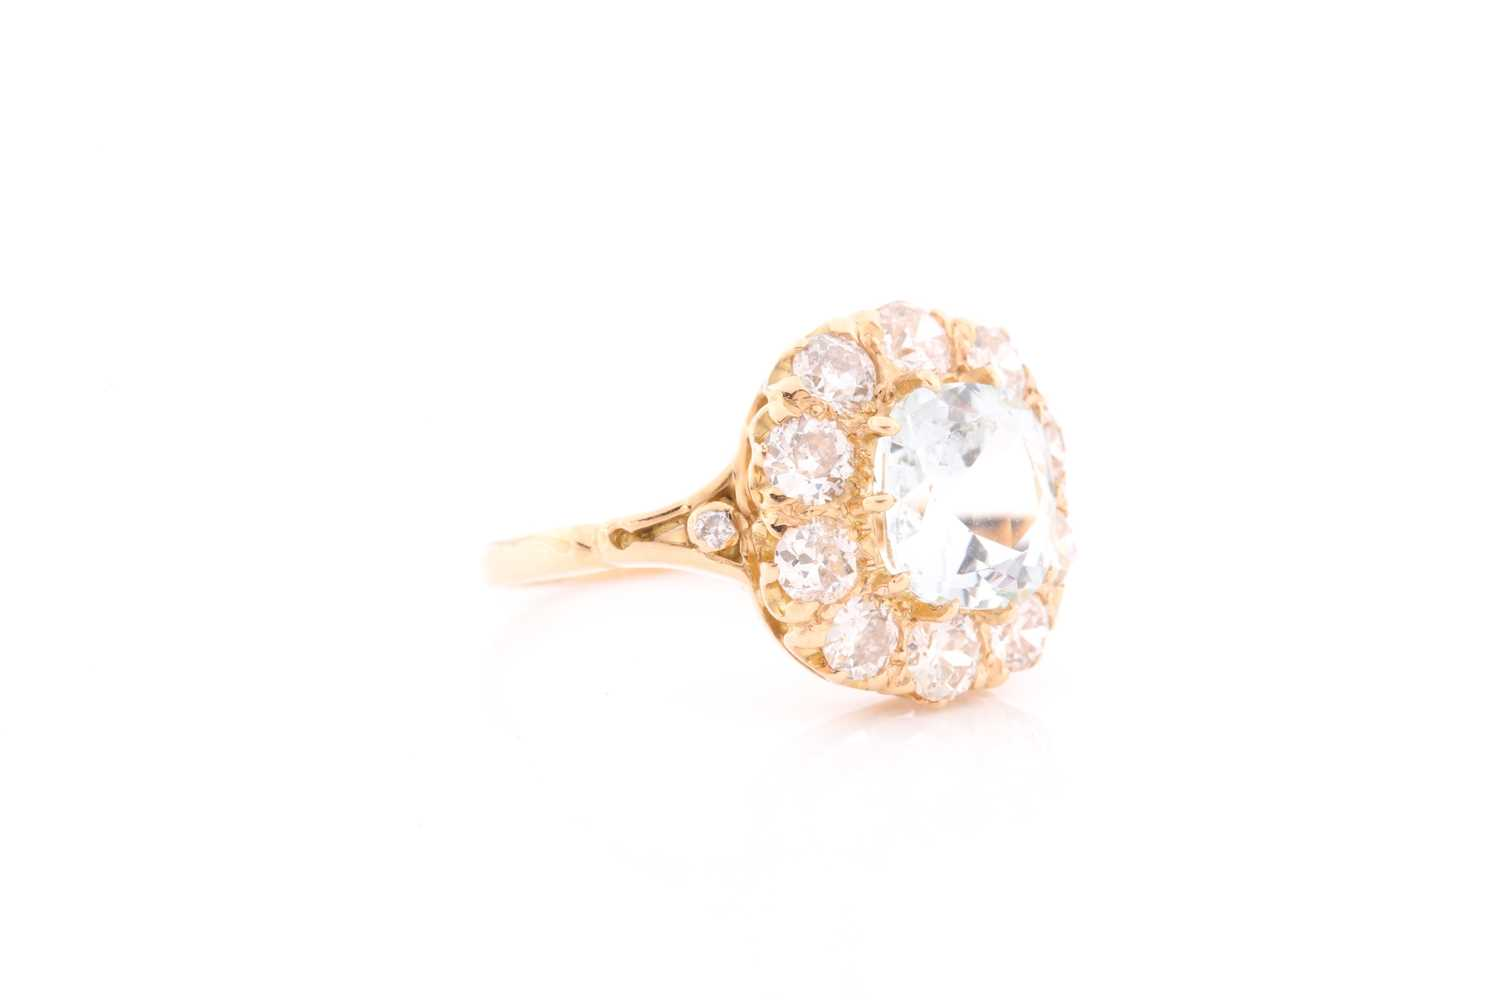 An 18ct yellow gold, diamond, and aquamarine cluster ring, set with a cushion-cut aquamarine of - Image 2 of 4